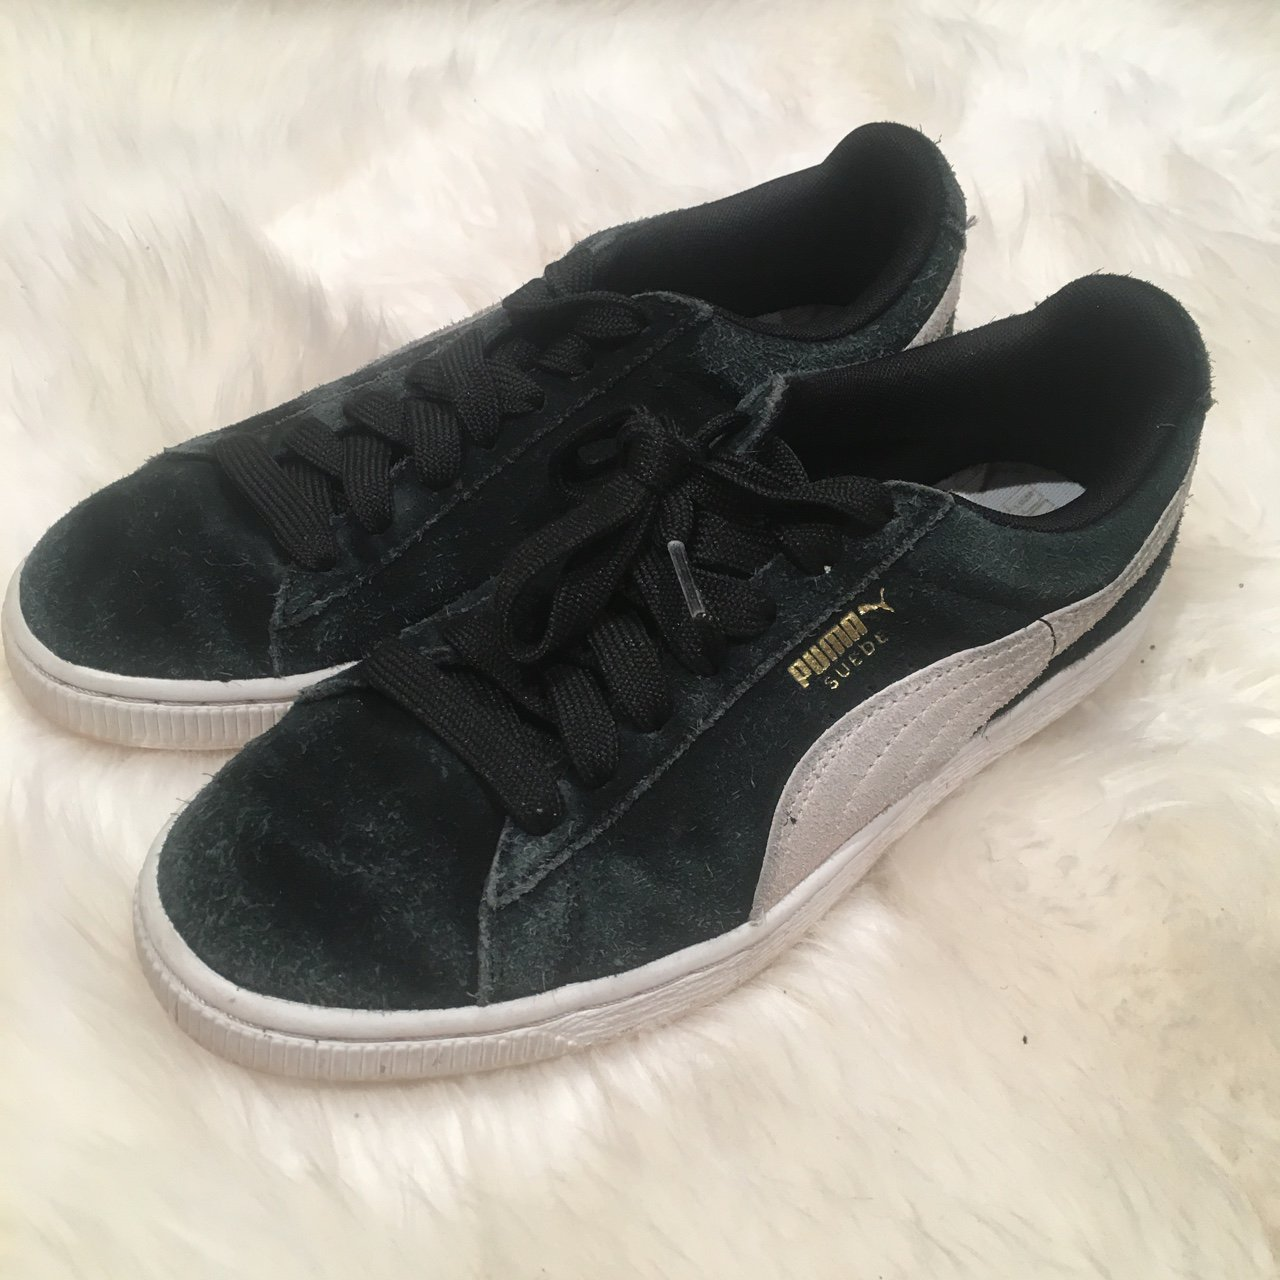 Puma suede sneakers Black Worn as shown Womens 7 Tags    66086f89f2